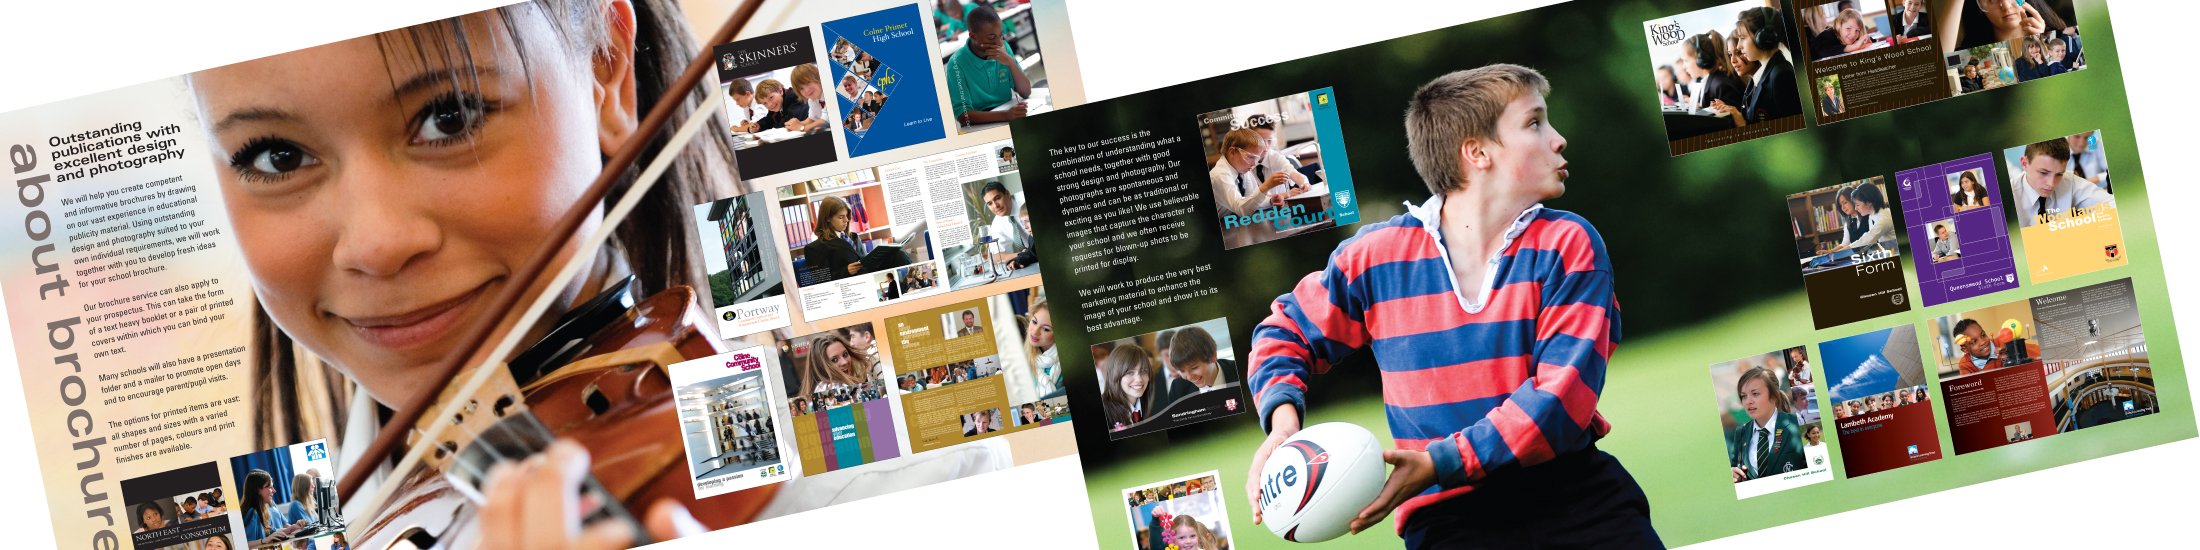 School brochures showing music and sport articles